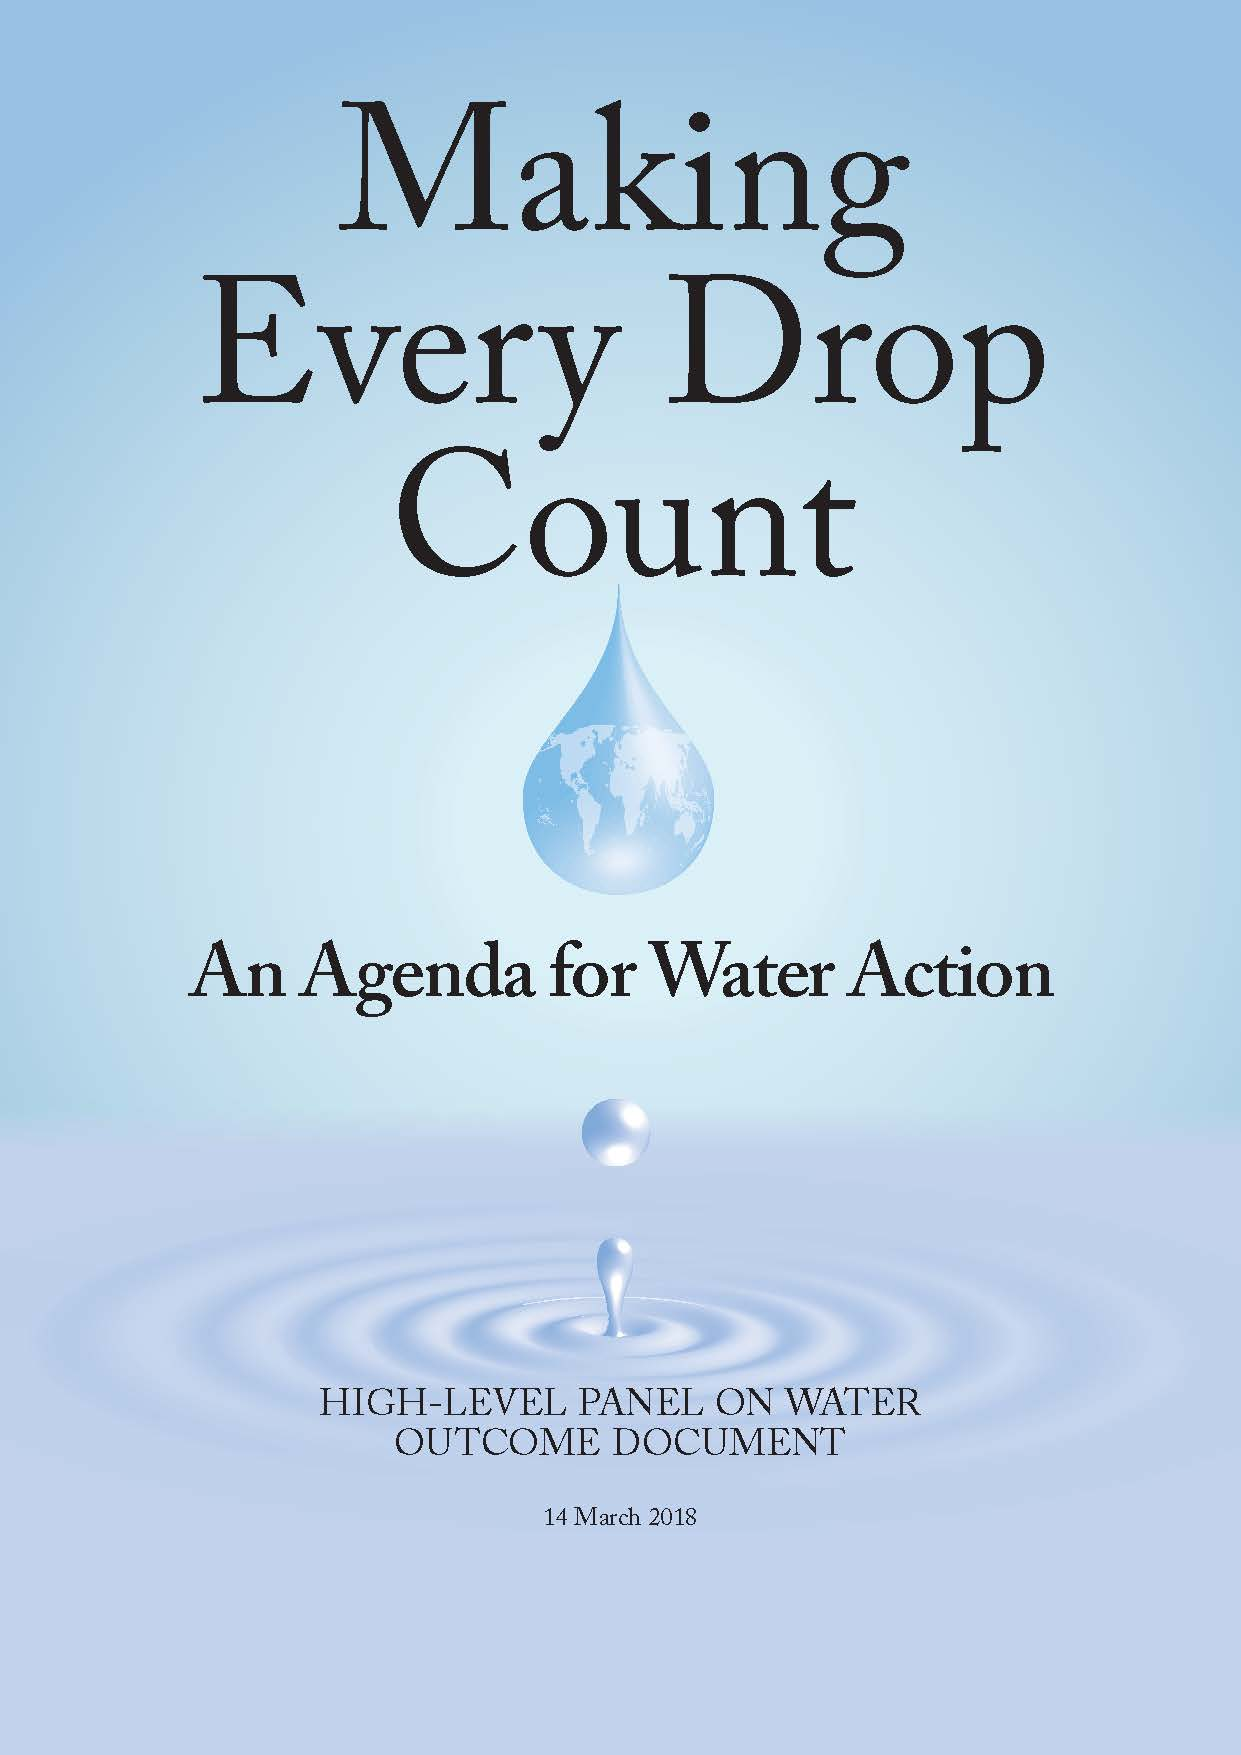 An Agenda for Water Action